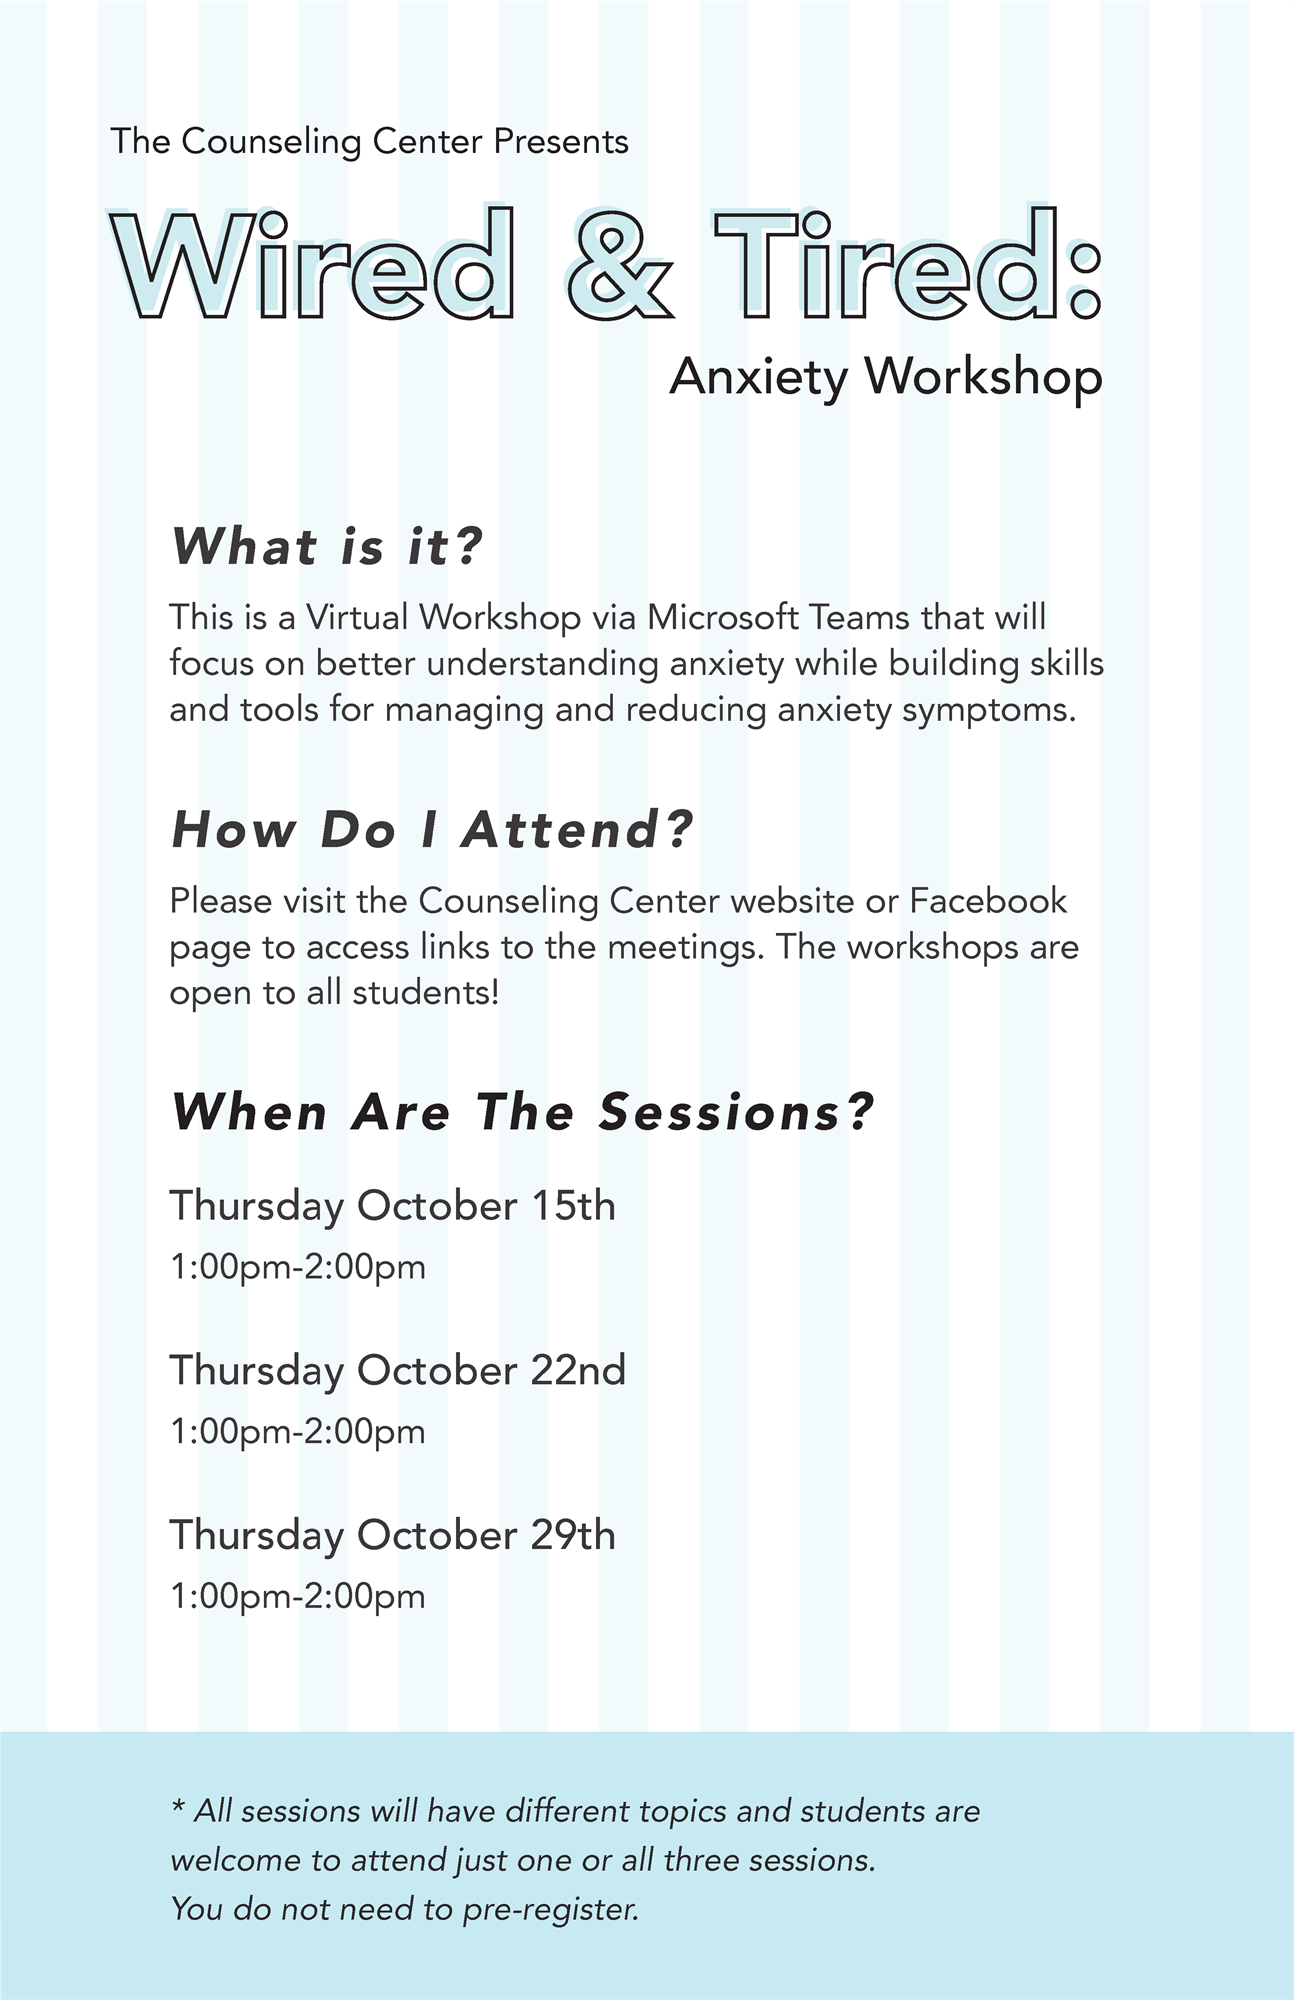 Wired & Tired Anxiety Workshop